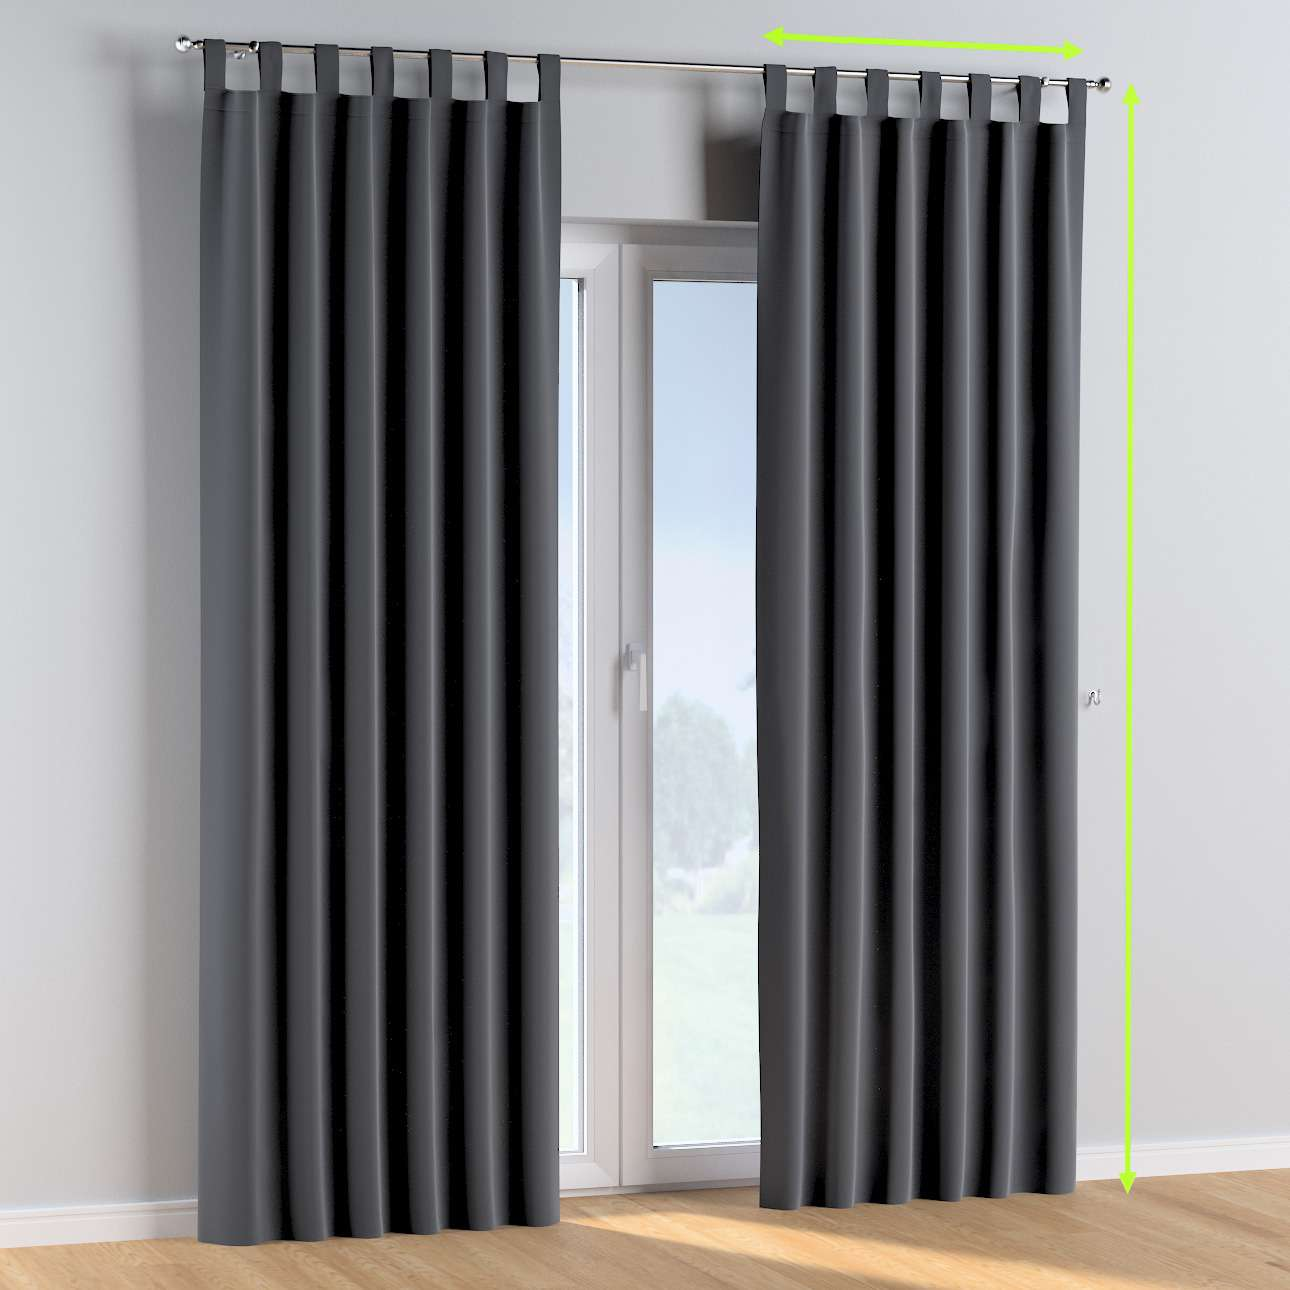 Tab top curtains in collection Posh Velvet, fabric: 704-12